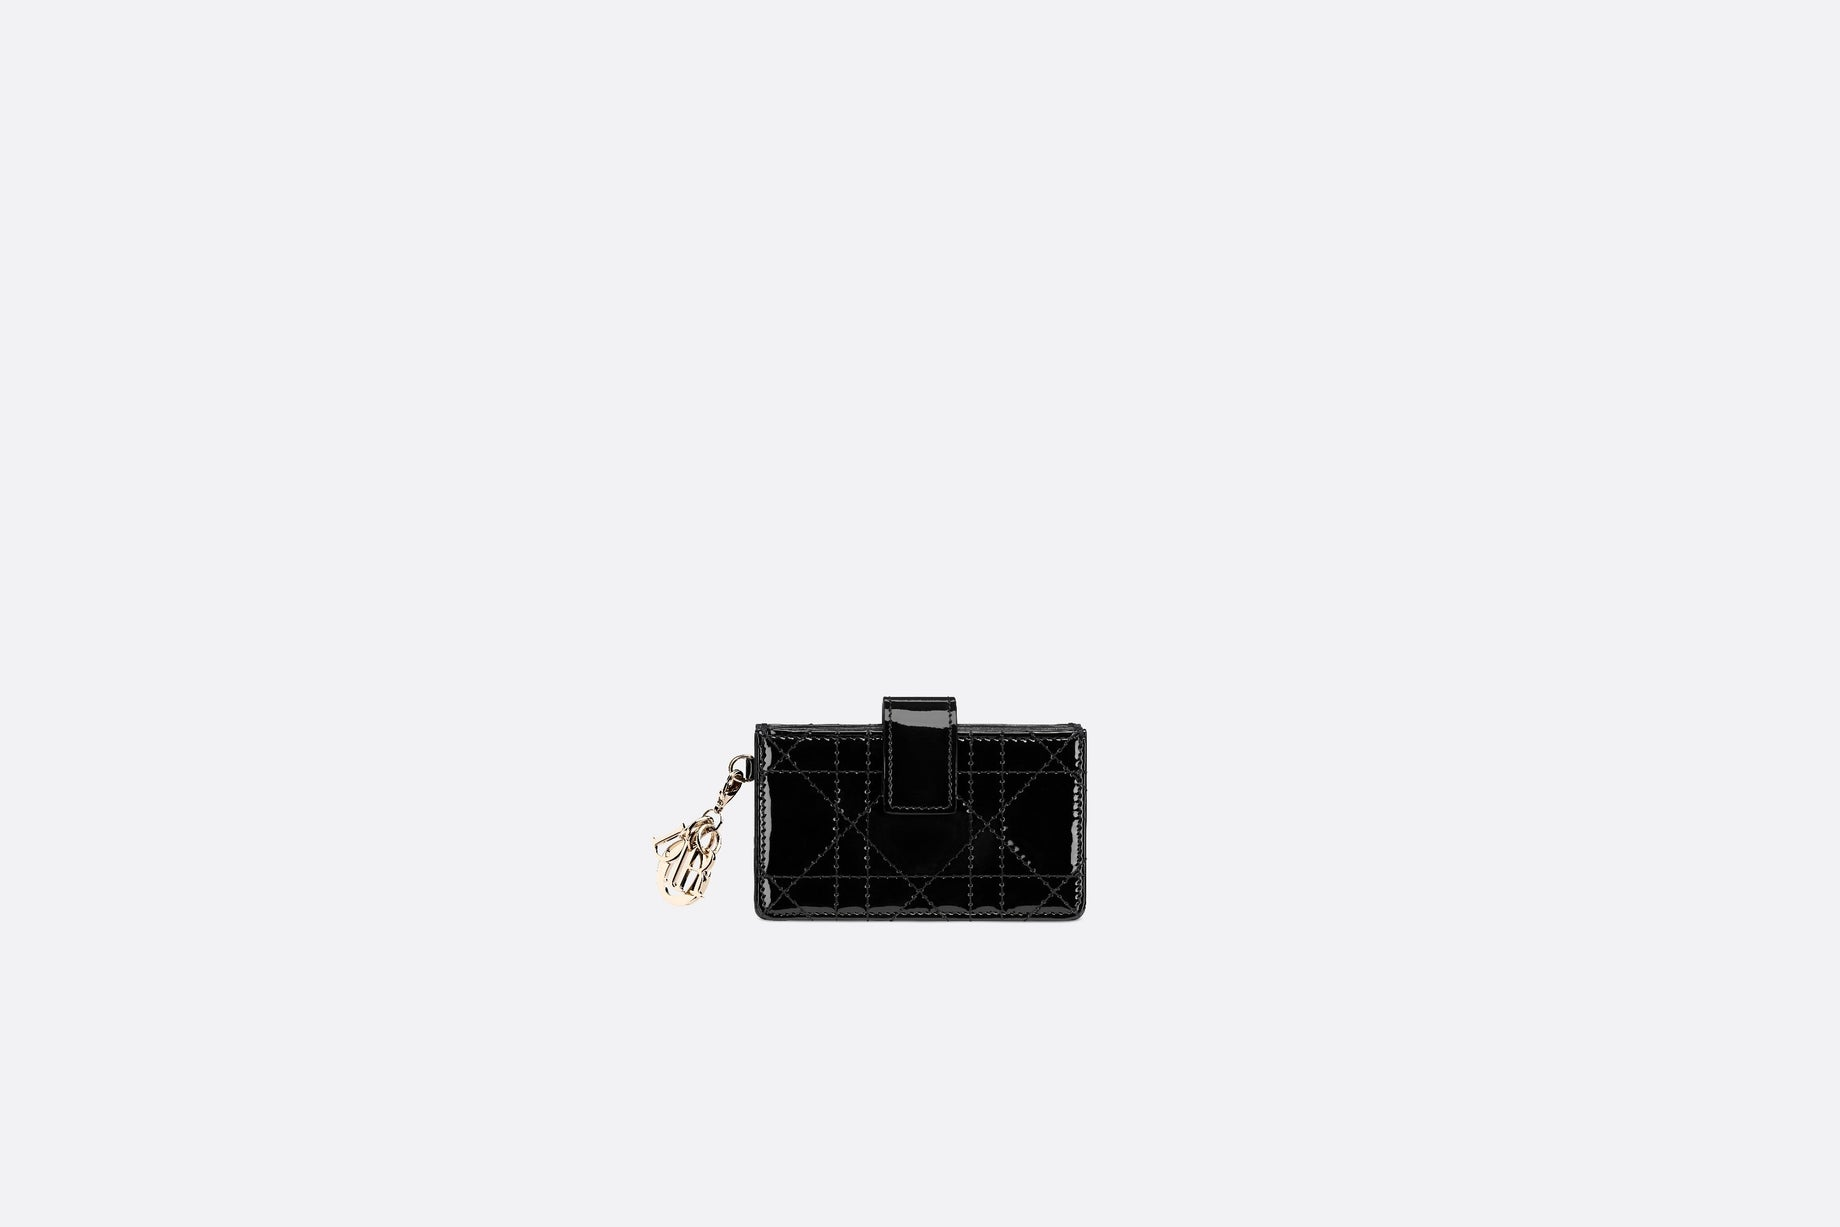 Lady Dior 5-Gusset Card Holder • Black Cannage Patent Calfskin